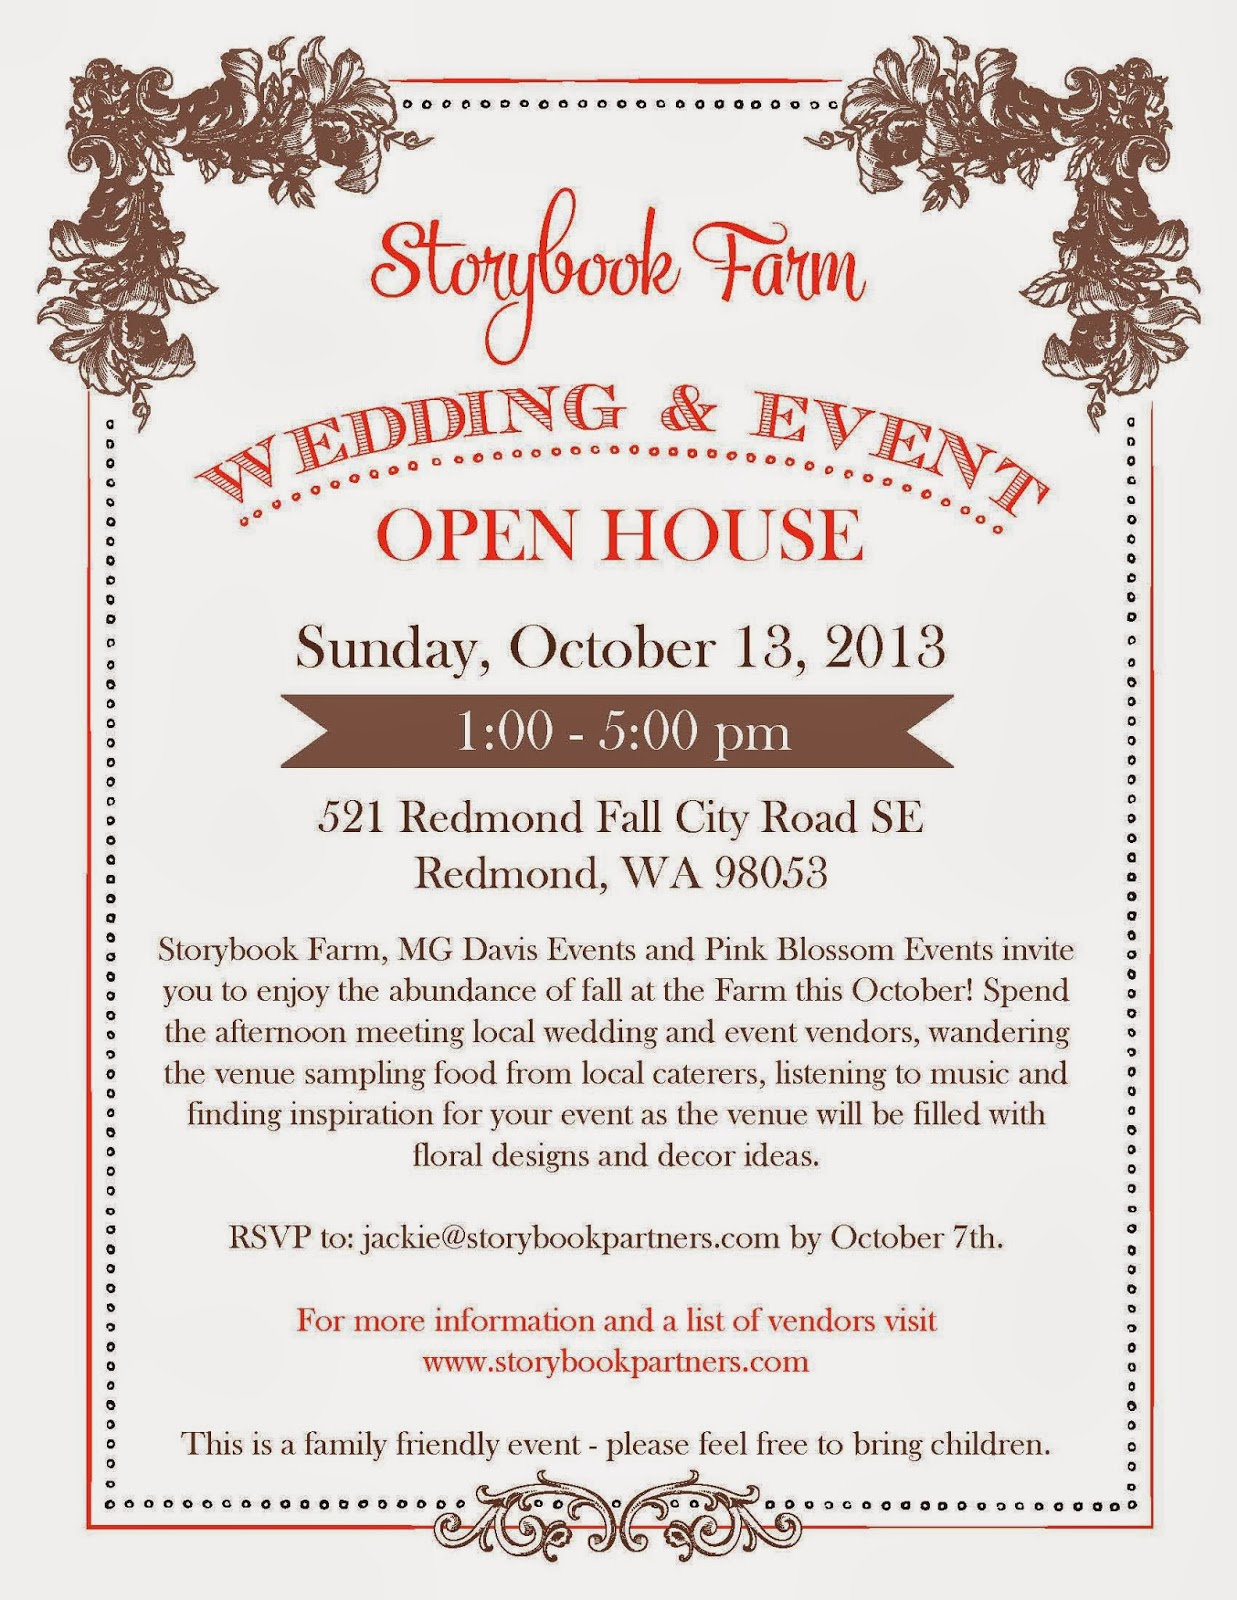 Open House Wedding Reception Ideas Pink Blossom Events Storybook Farm Event R2serverfo Image